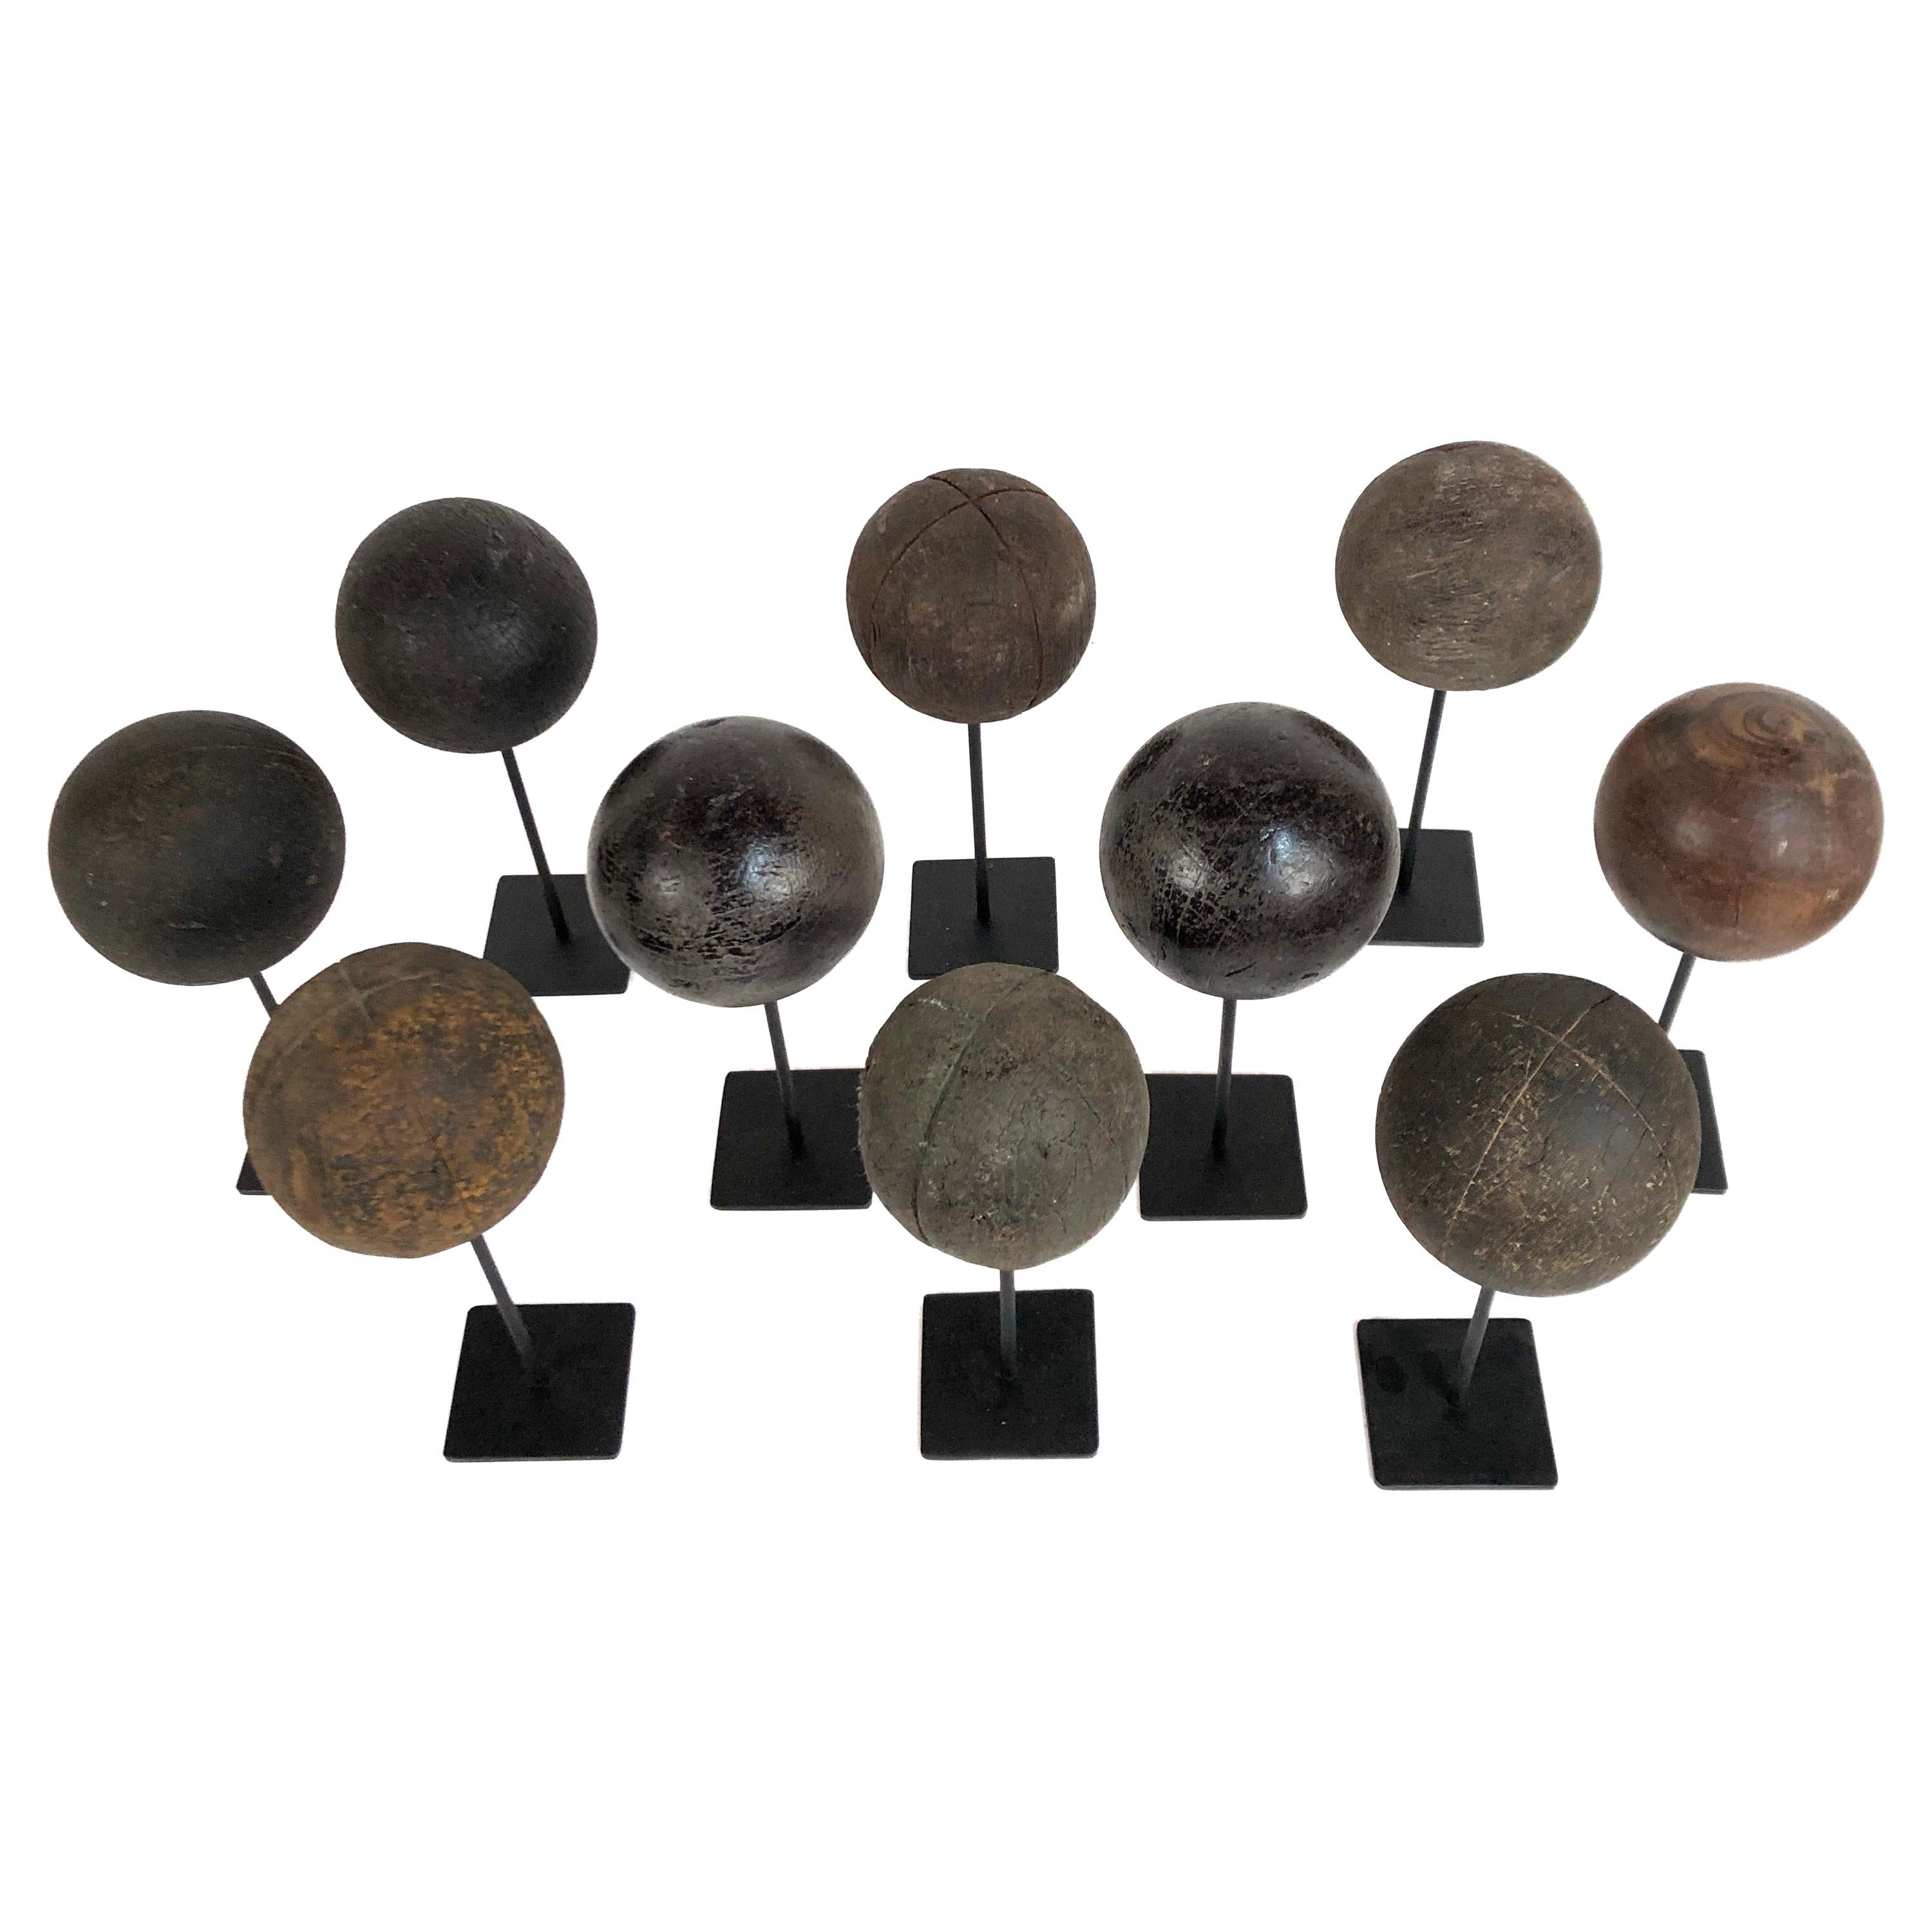 Collection of 10 Antique Wooden Bocce Balls on Custom Made Steel Stands